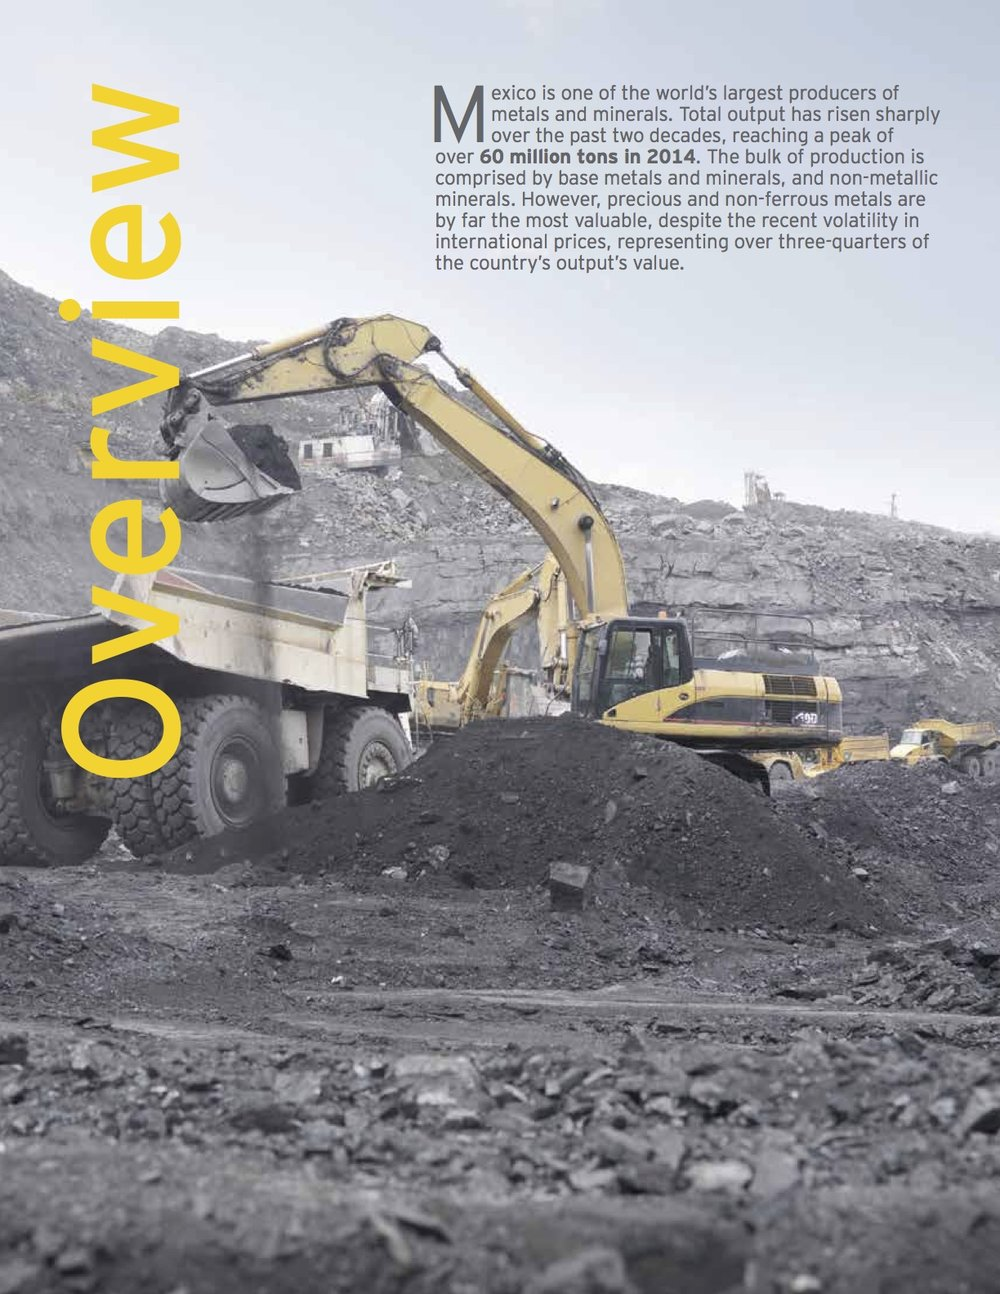 ey-the-mining-industry-in-mexico-02.jpg